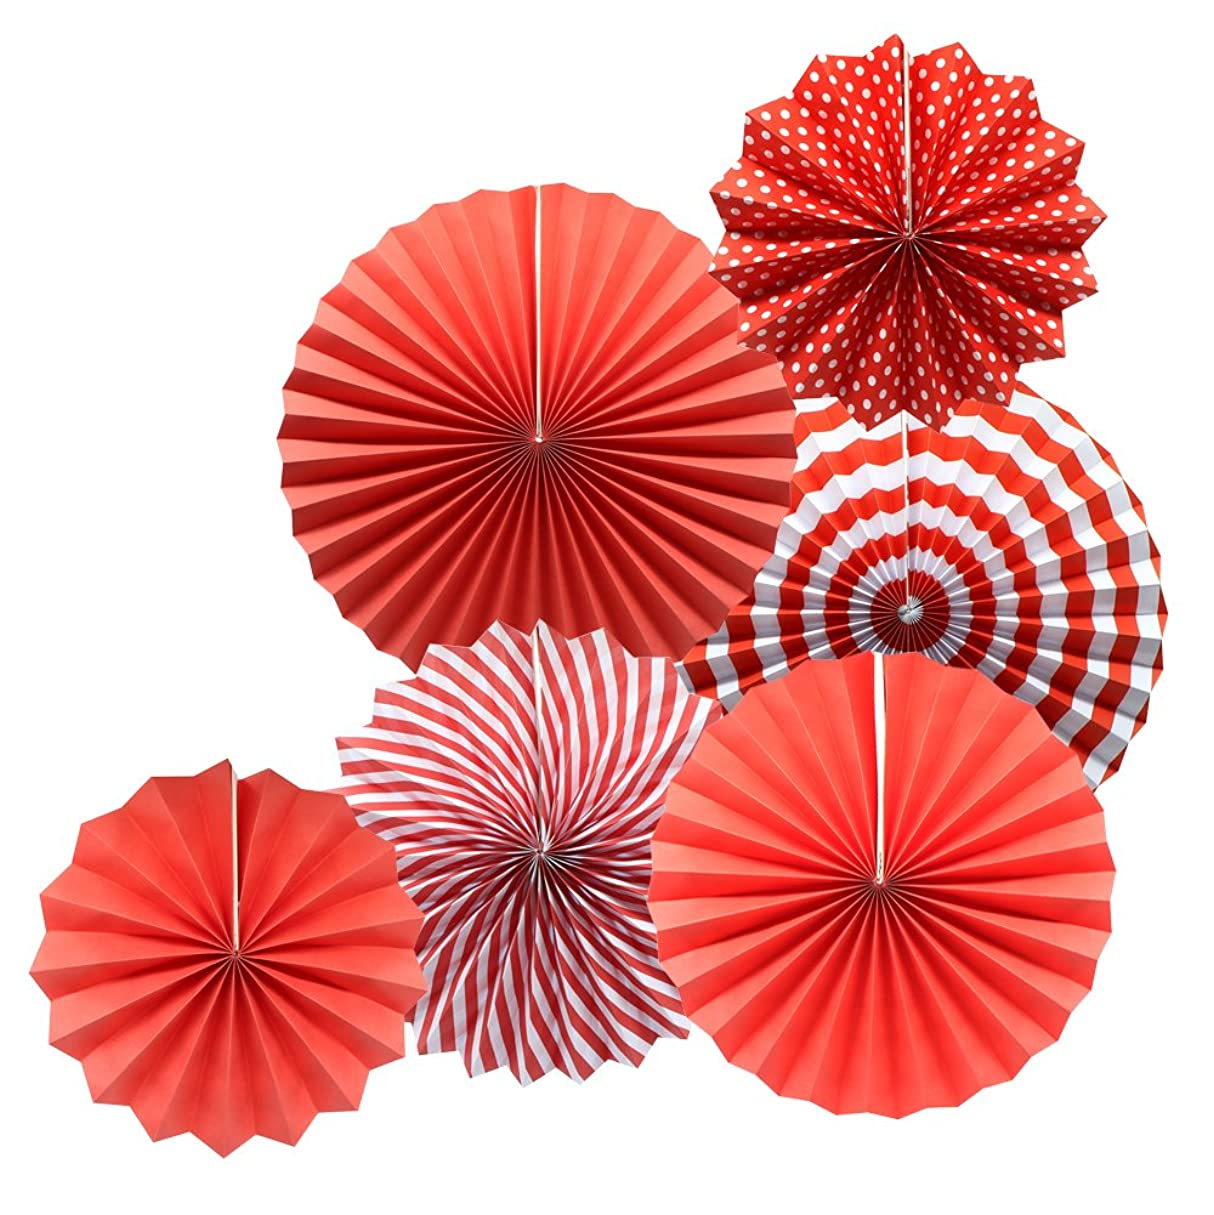 (Red) - Party Hanging Paper Fans Set, Red Round Pattern Paper Garlands Decoration for Birthday Wedding Graduation Events Accessories, Set of 6